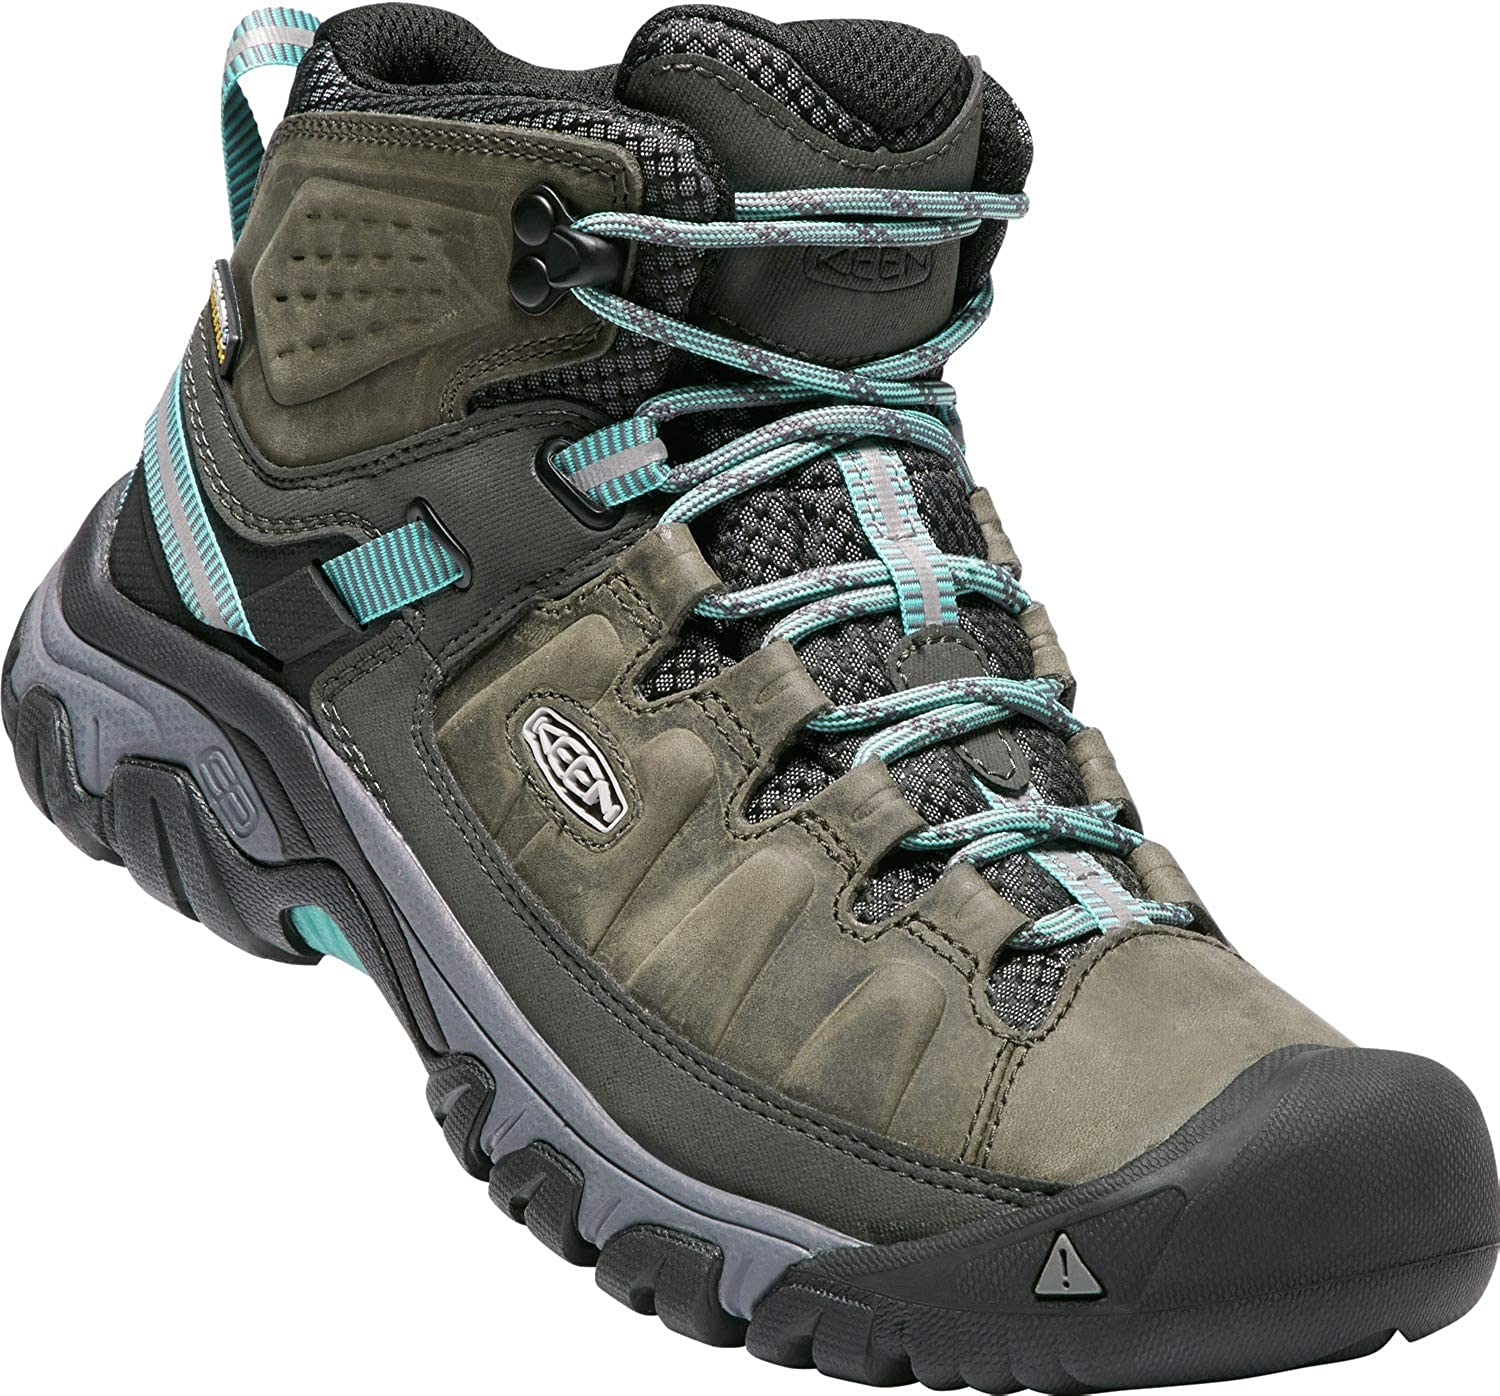 1b9ce41b07b KEEN Women's Targhee ILI Mid WP Hiking Boot